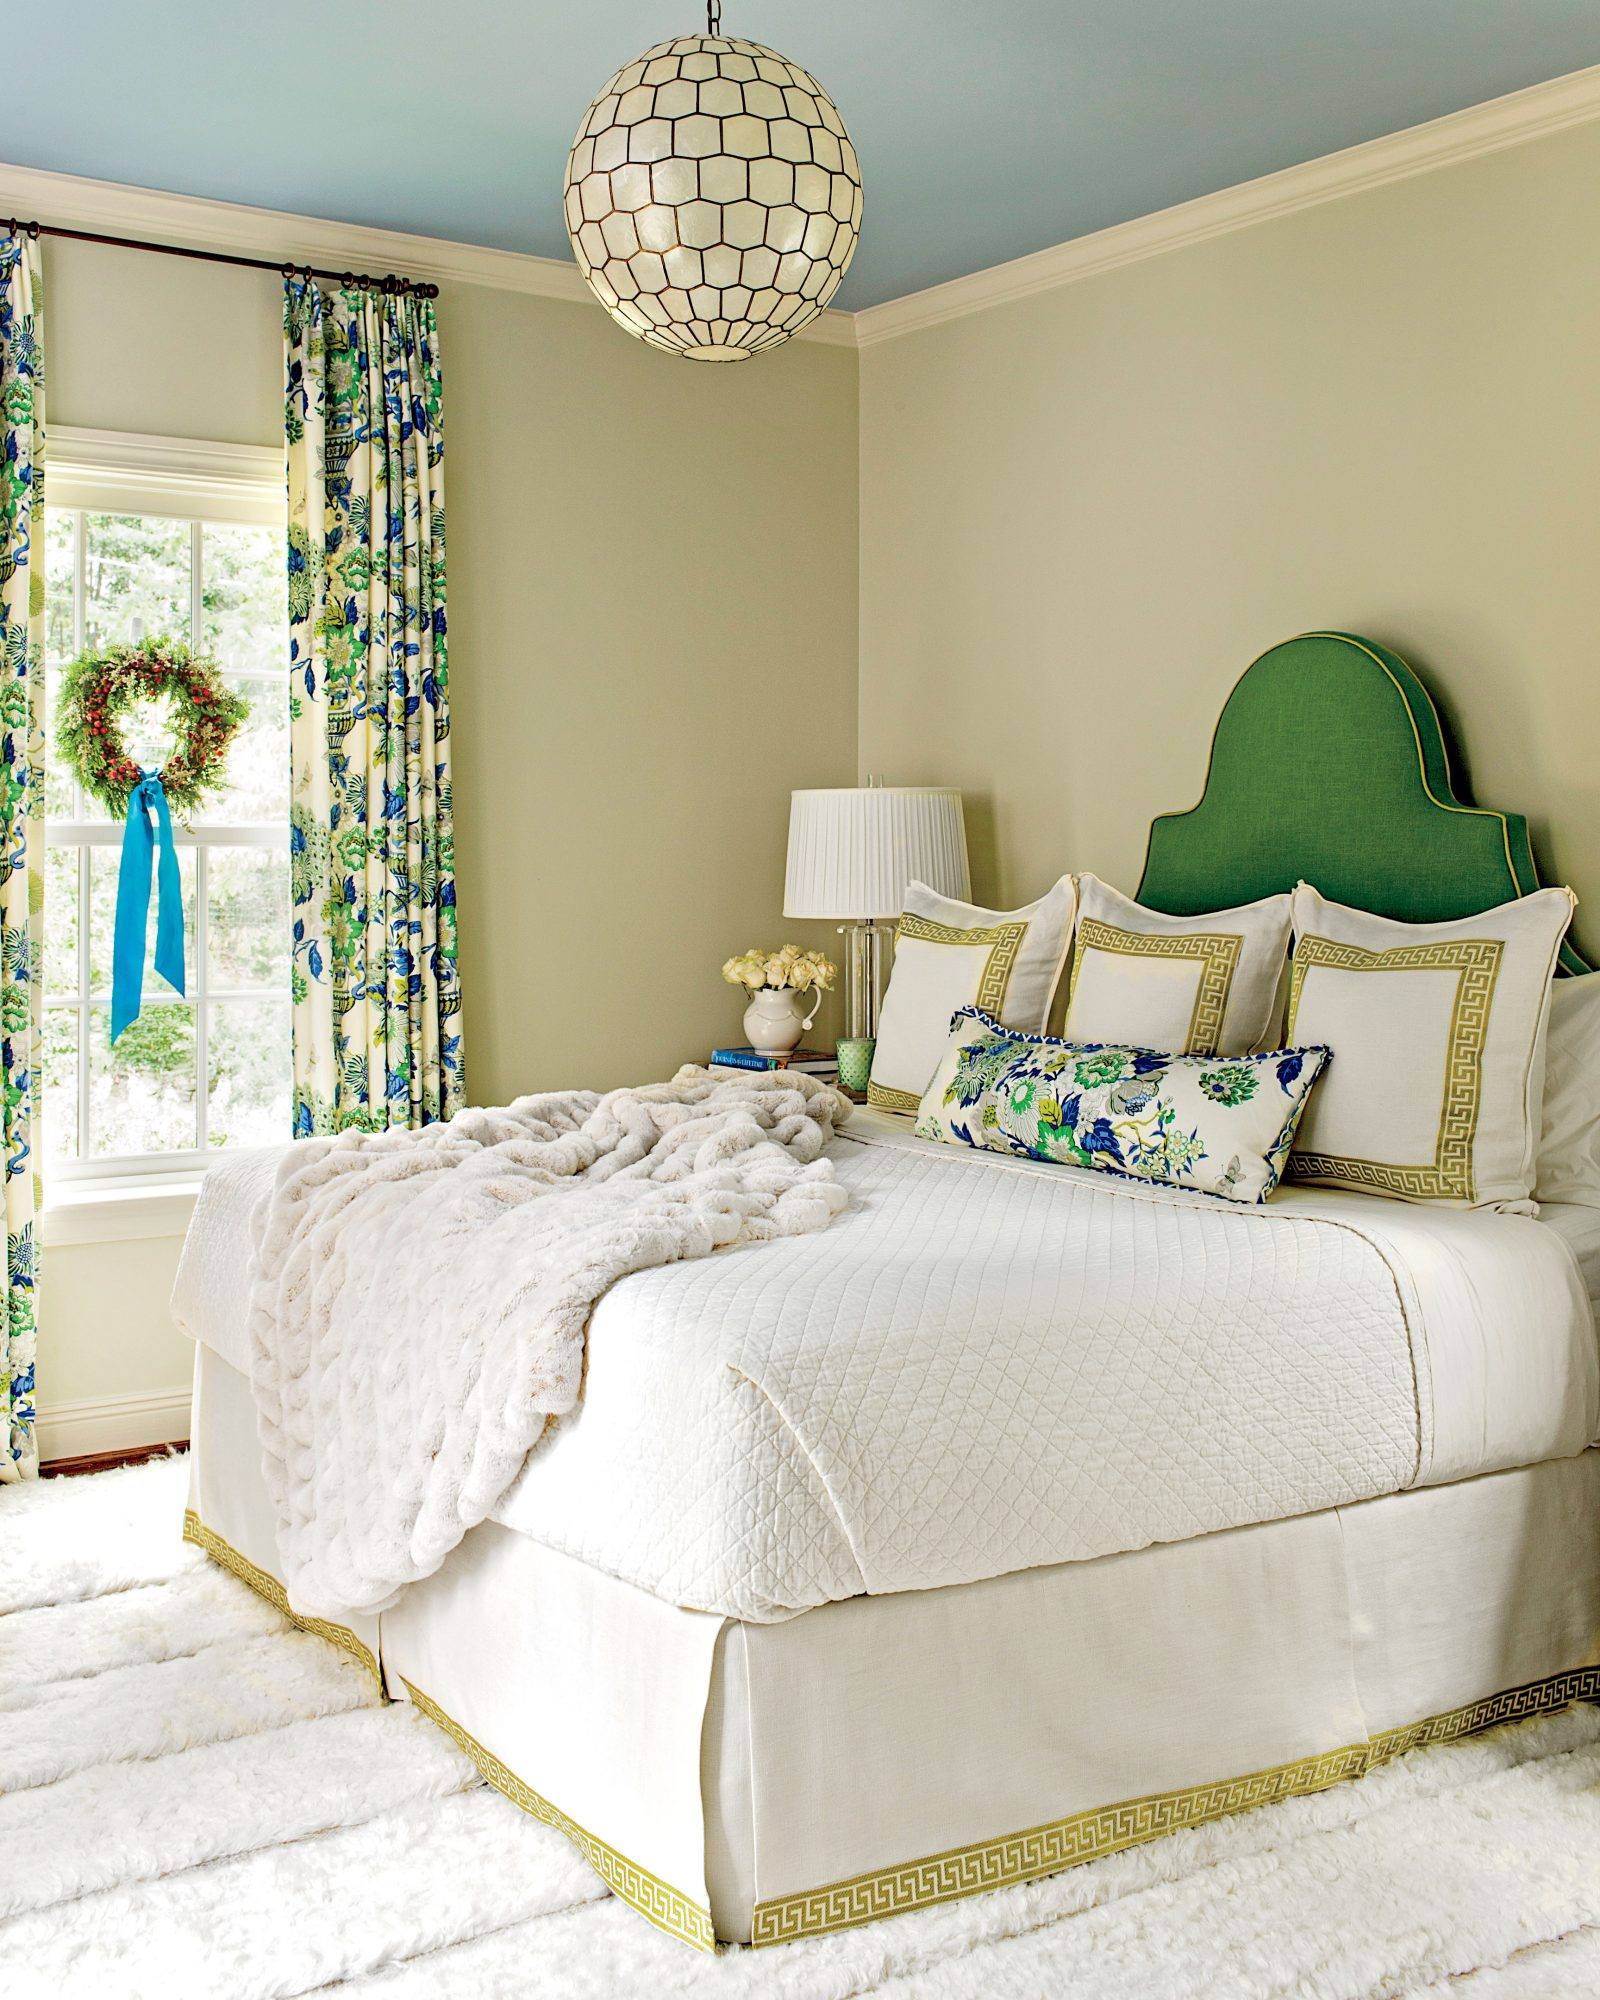 Master Bedroom with Green Headboard